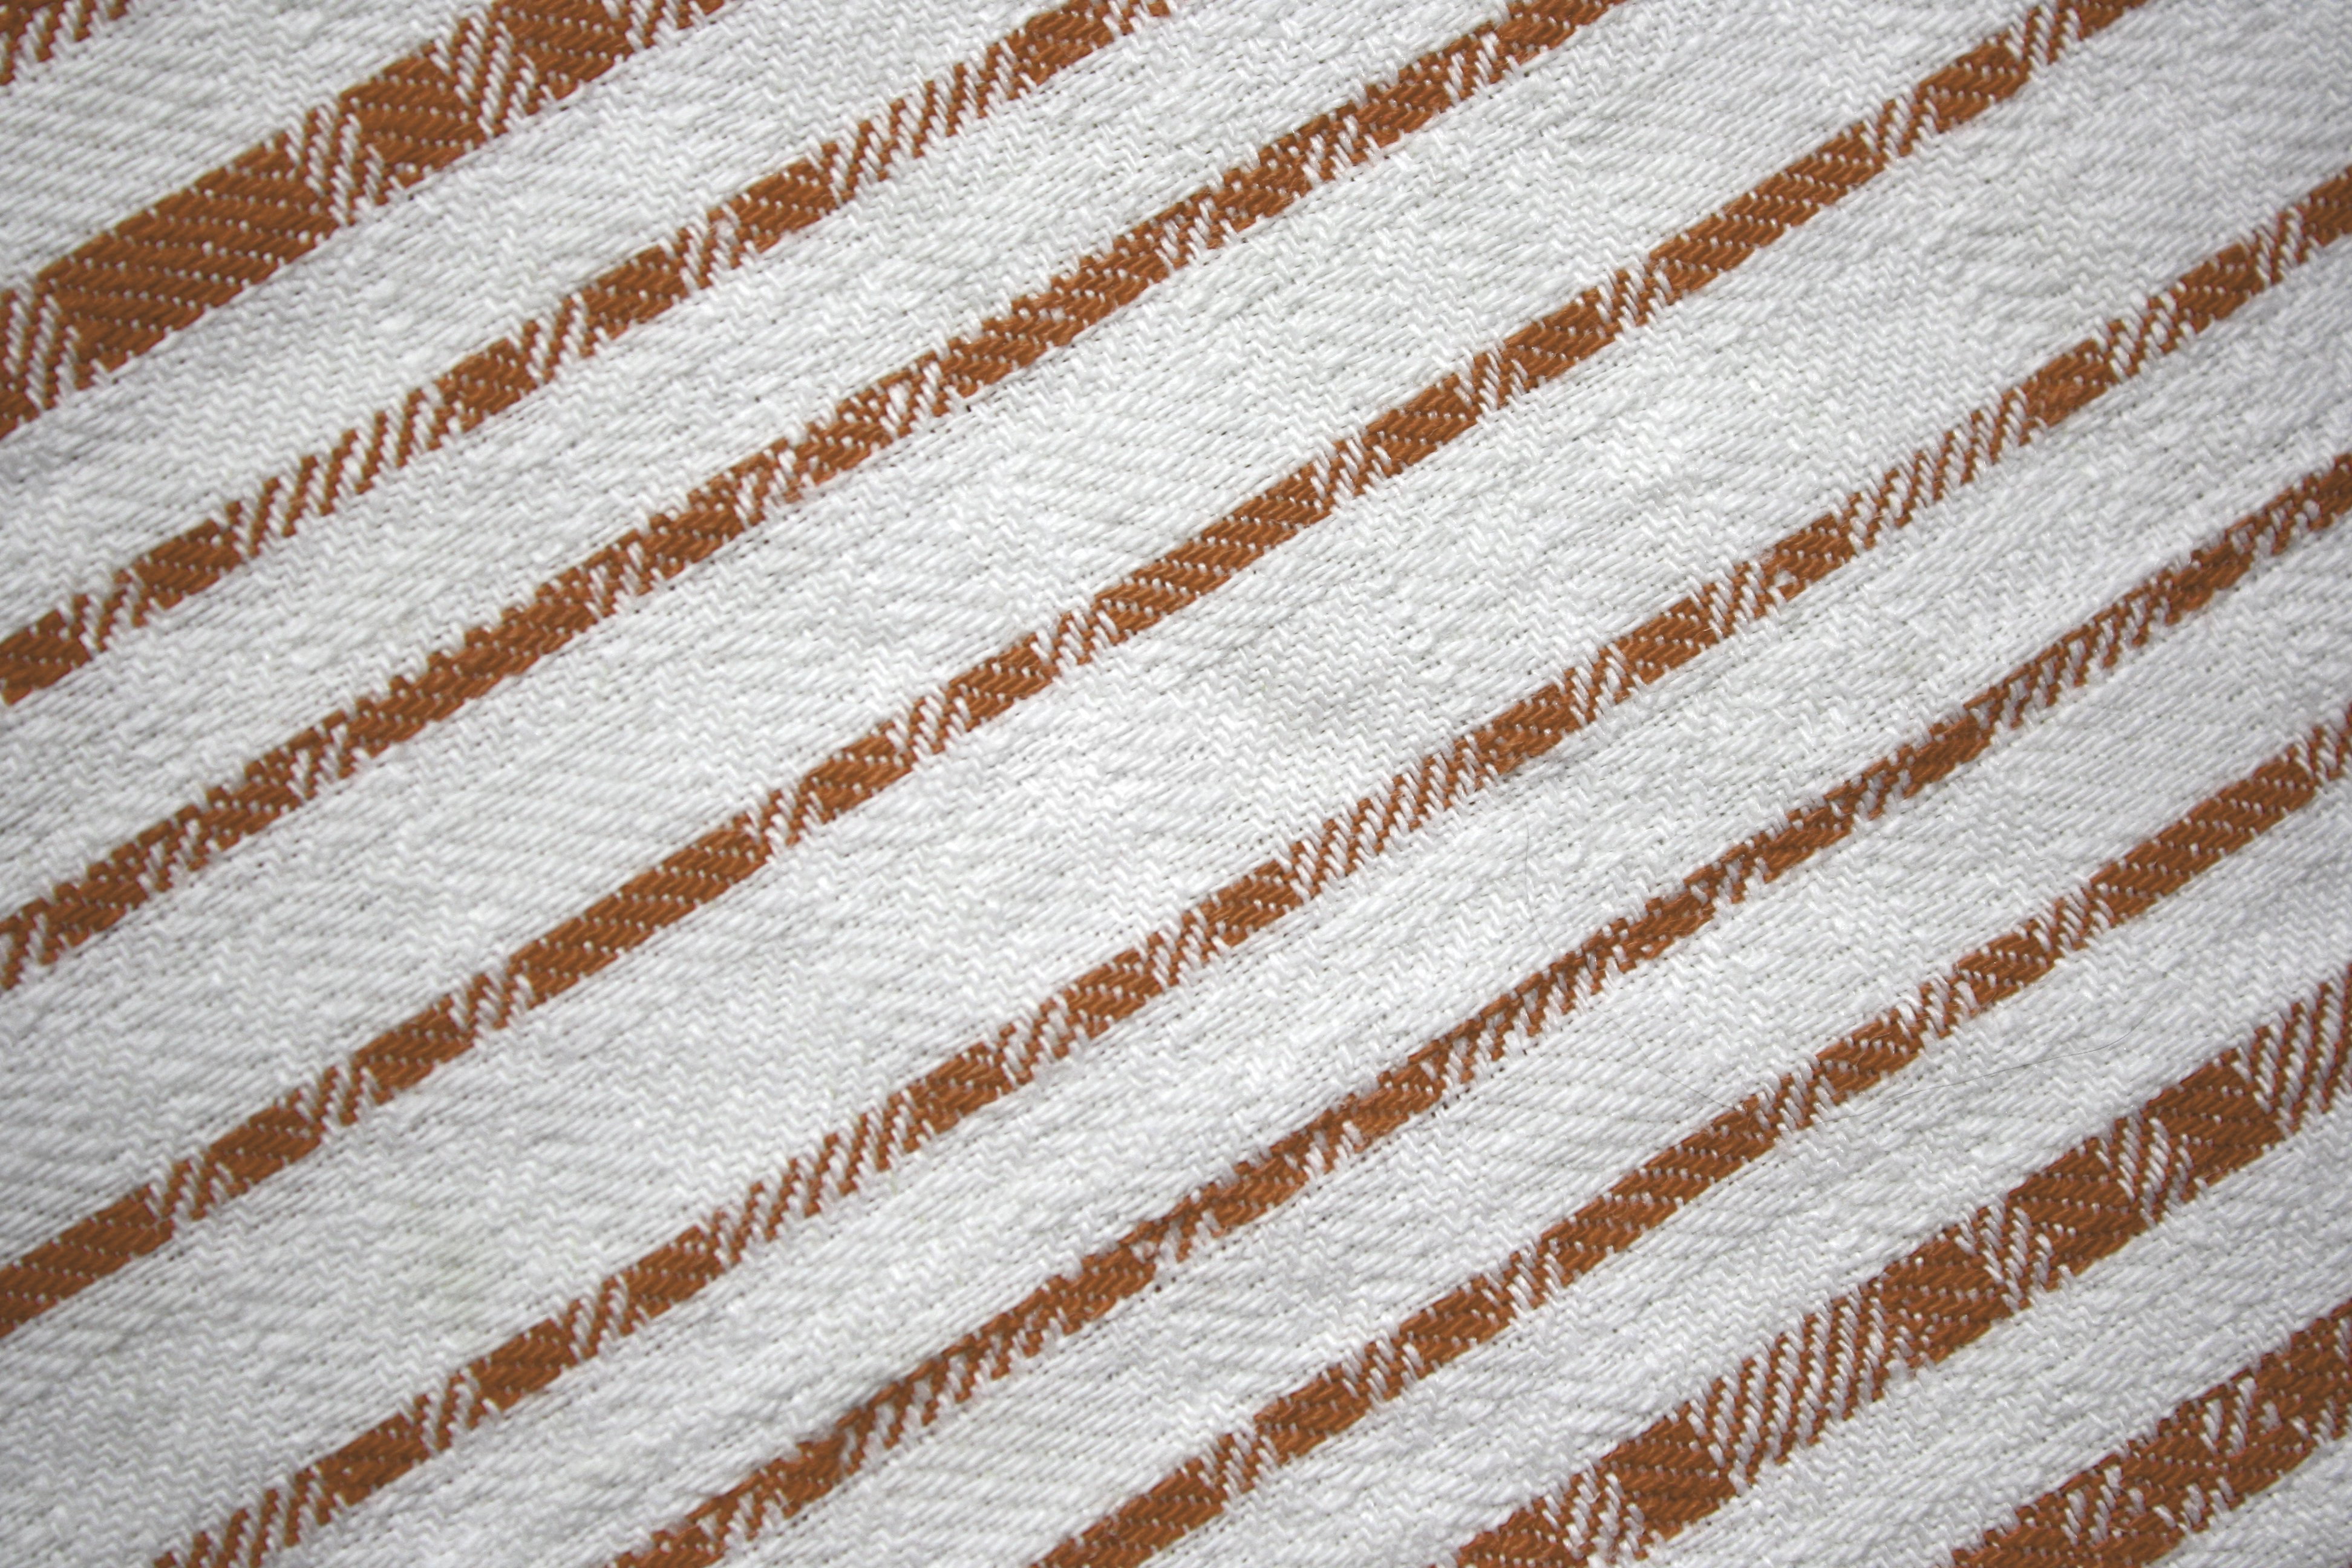 Off white diagonal striped plastic texture picture free photograph - Brown On White Diagonal Stripes Fabric Texture